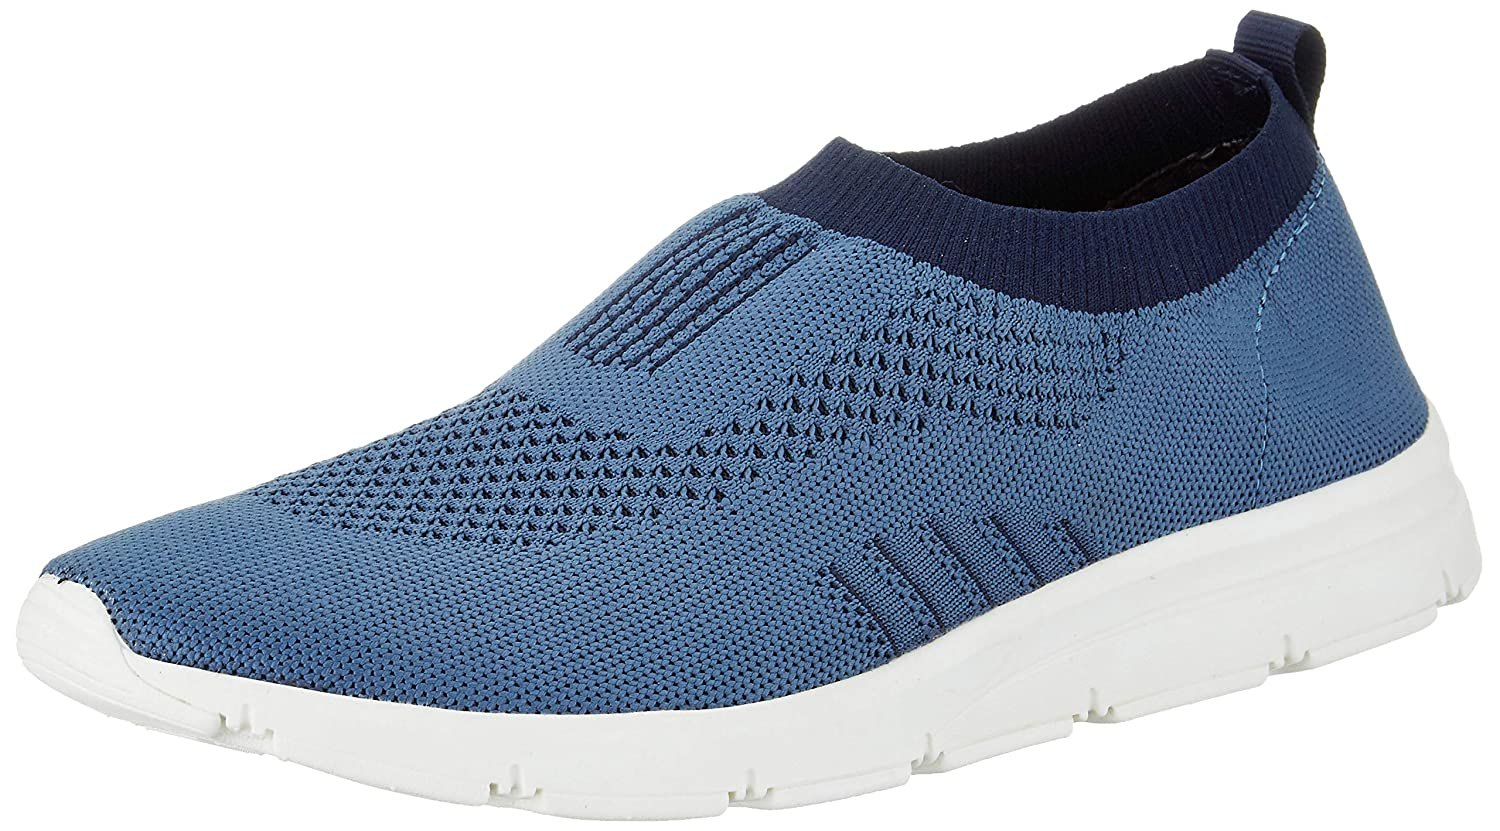 Bourge Lightweight running shoes